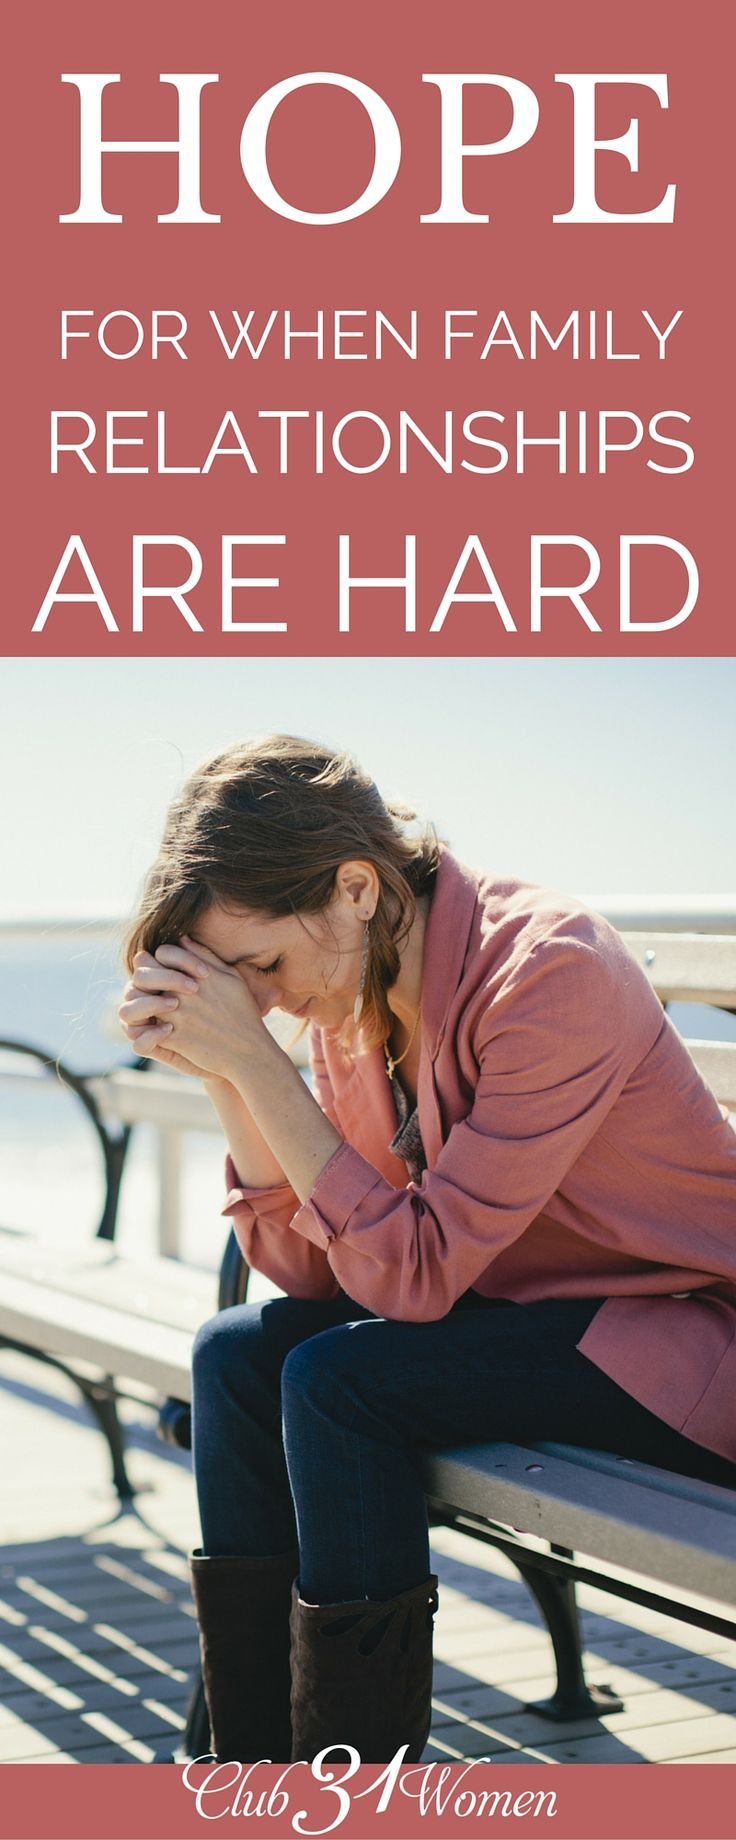 Why is family so difficult at times? Is there any hope for when relationships are hard? Yes, there is! And here's why family relationships are worth fighting for - VERY encouraging! ~ Club31Women